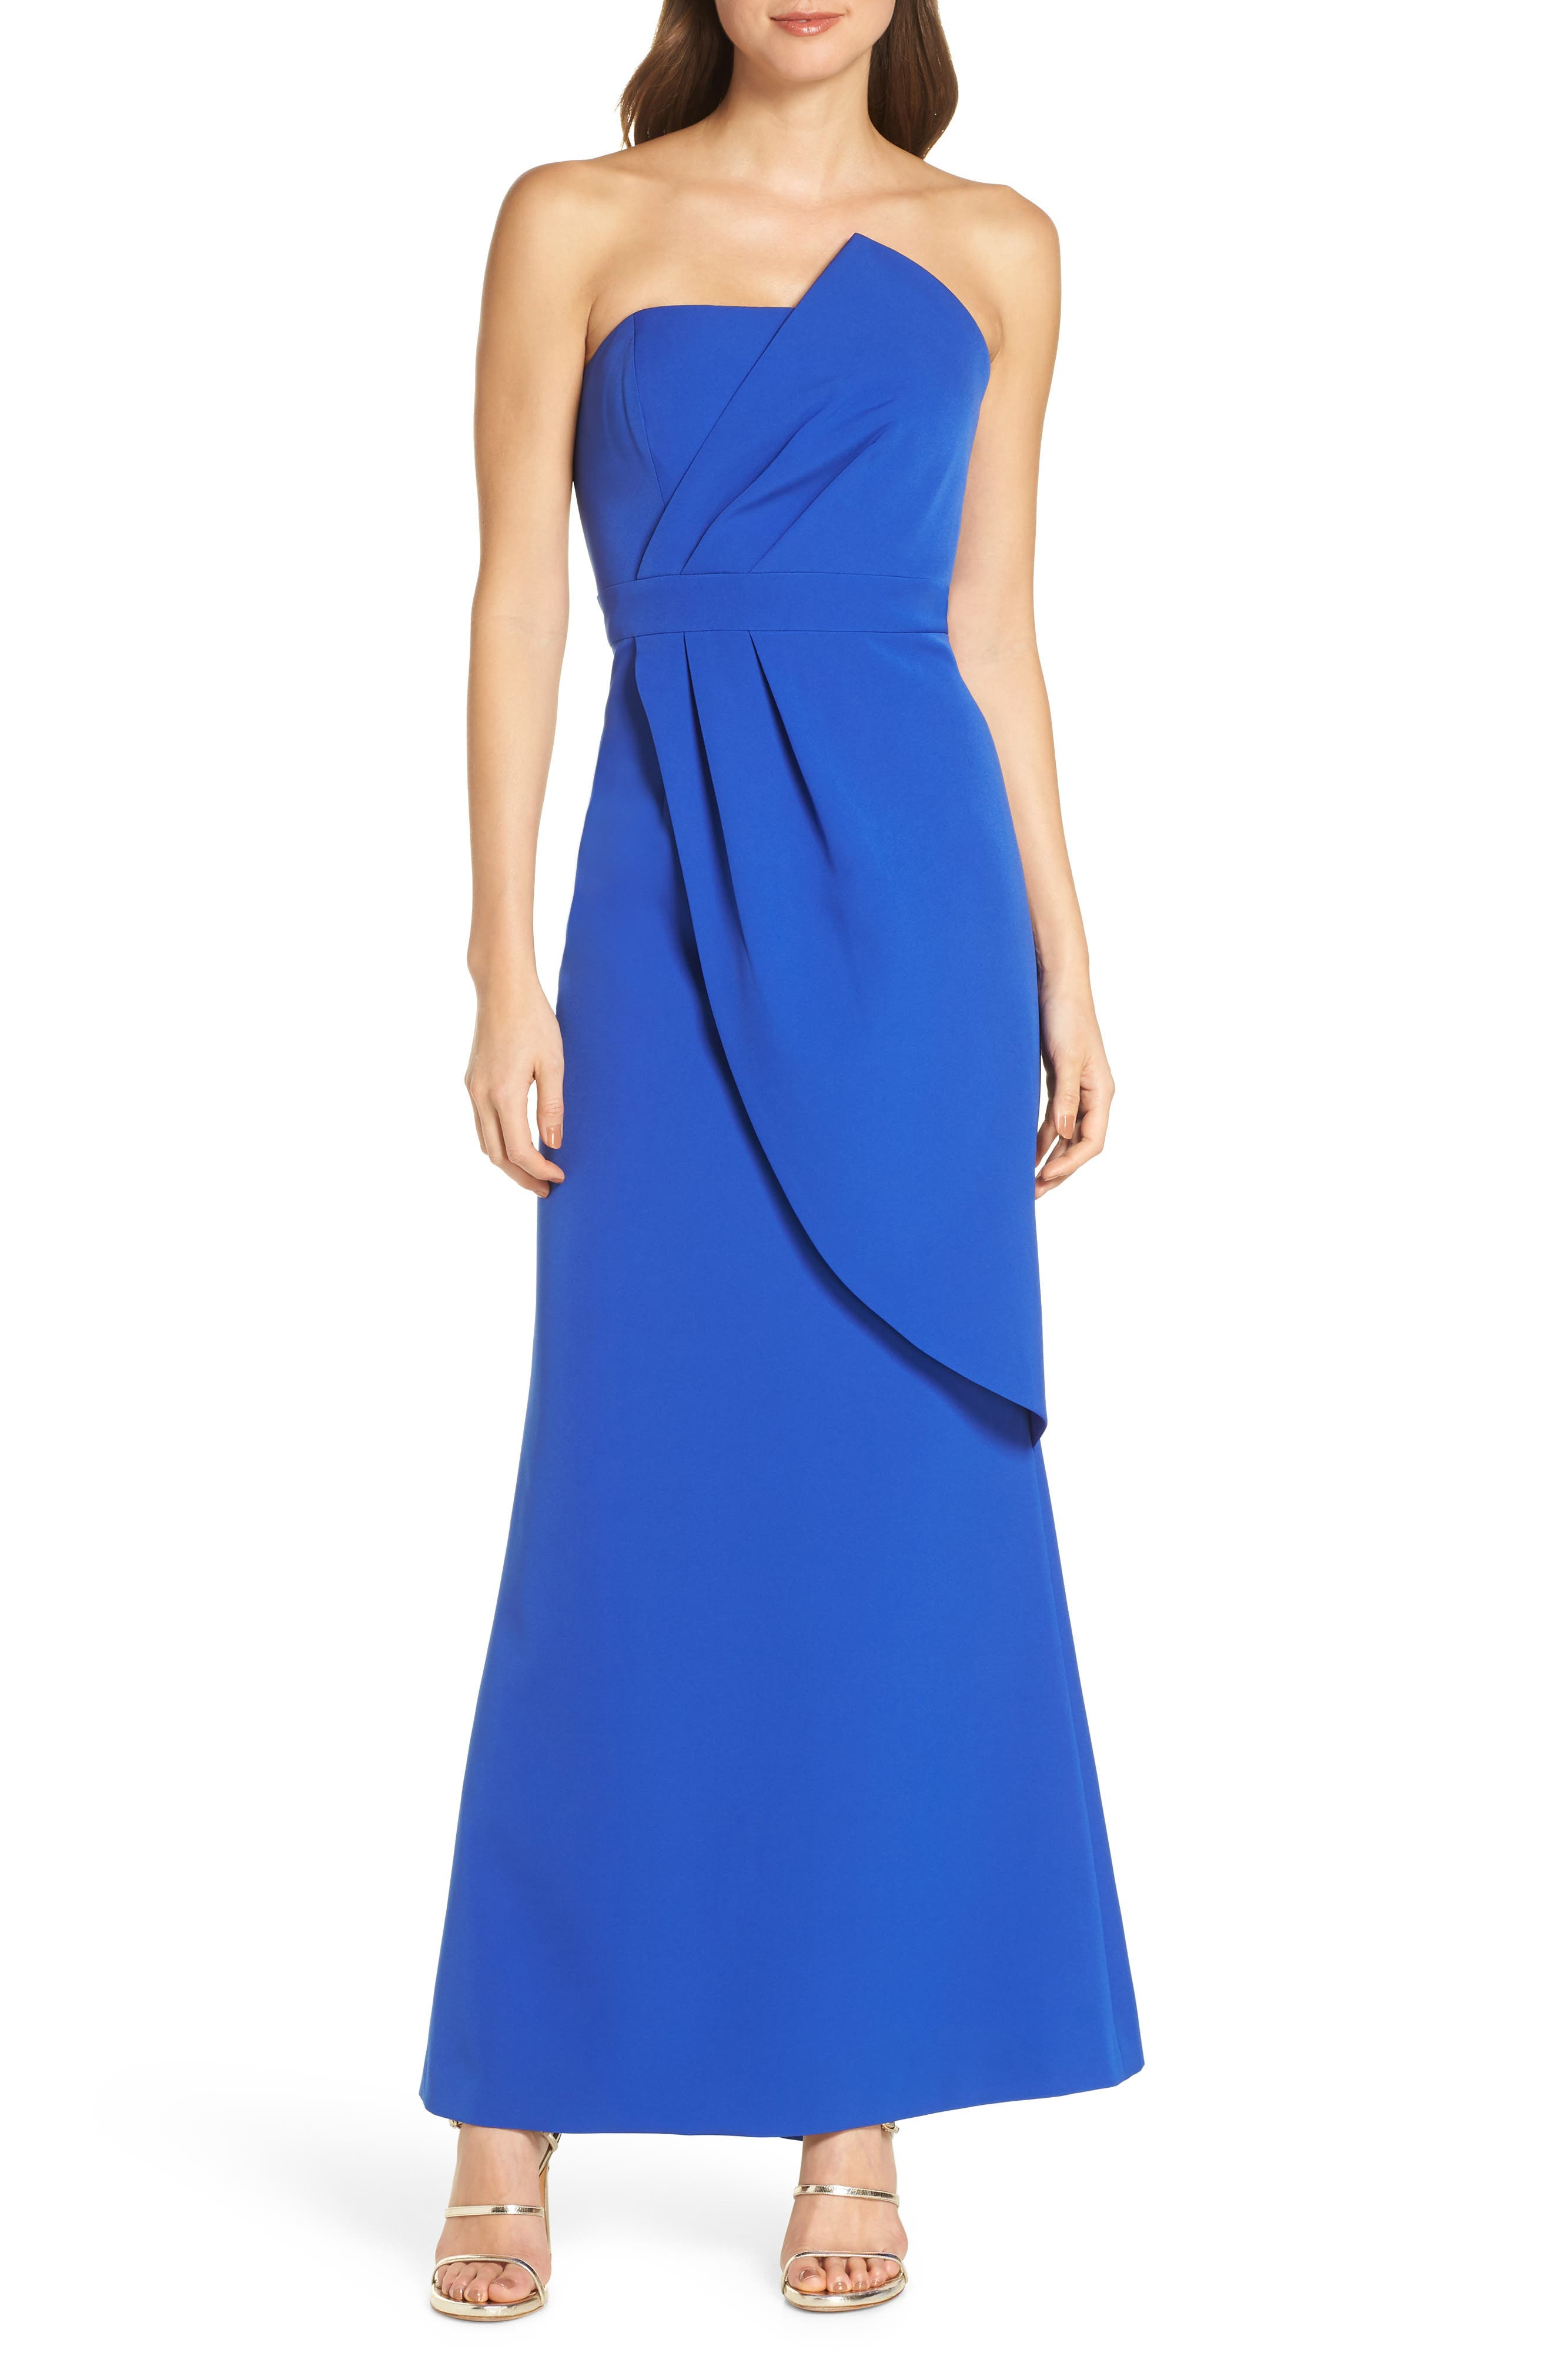 Vince Camuto Strapless Faux Wrap Evening Dress, Blue